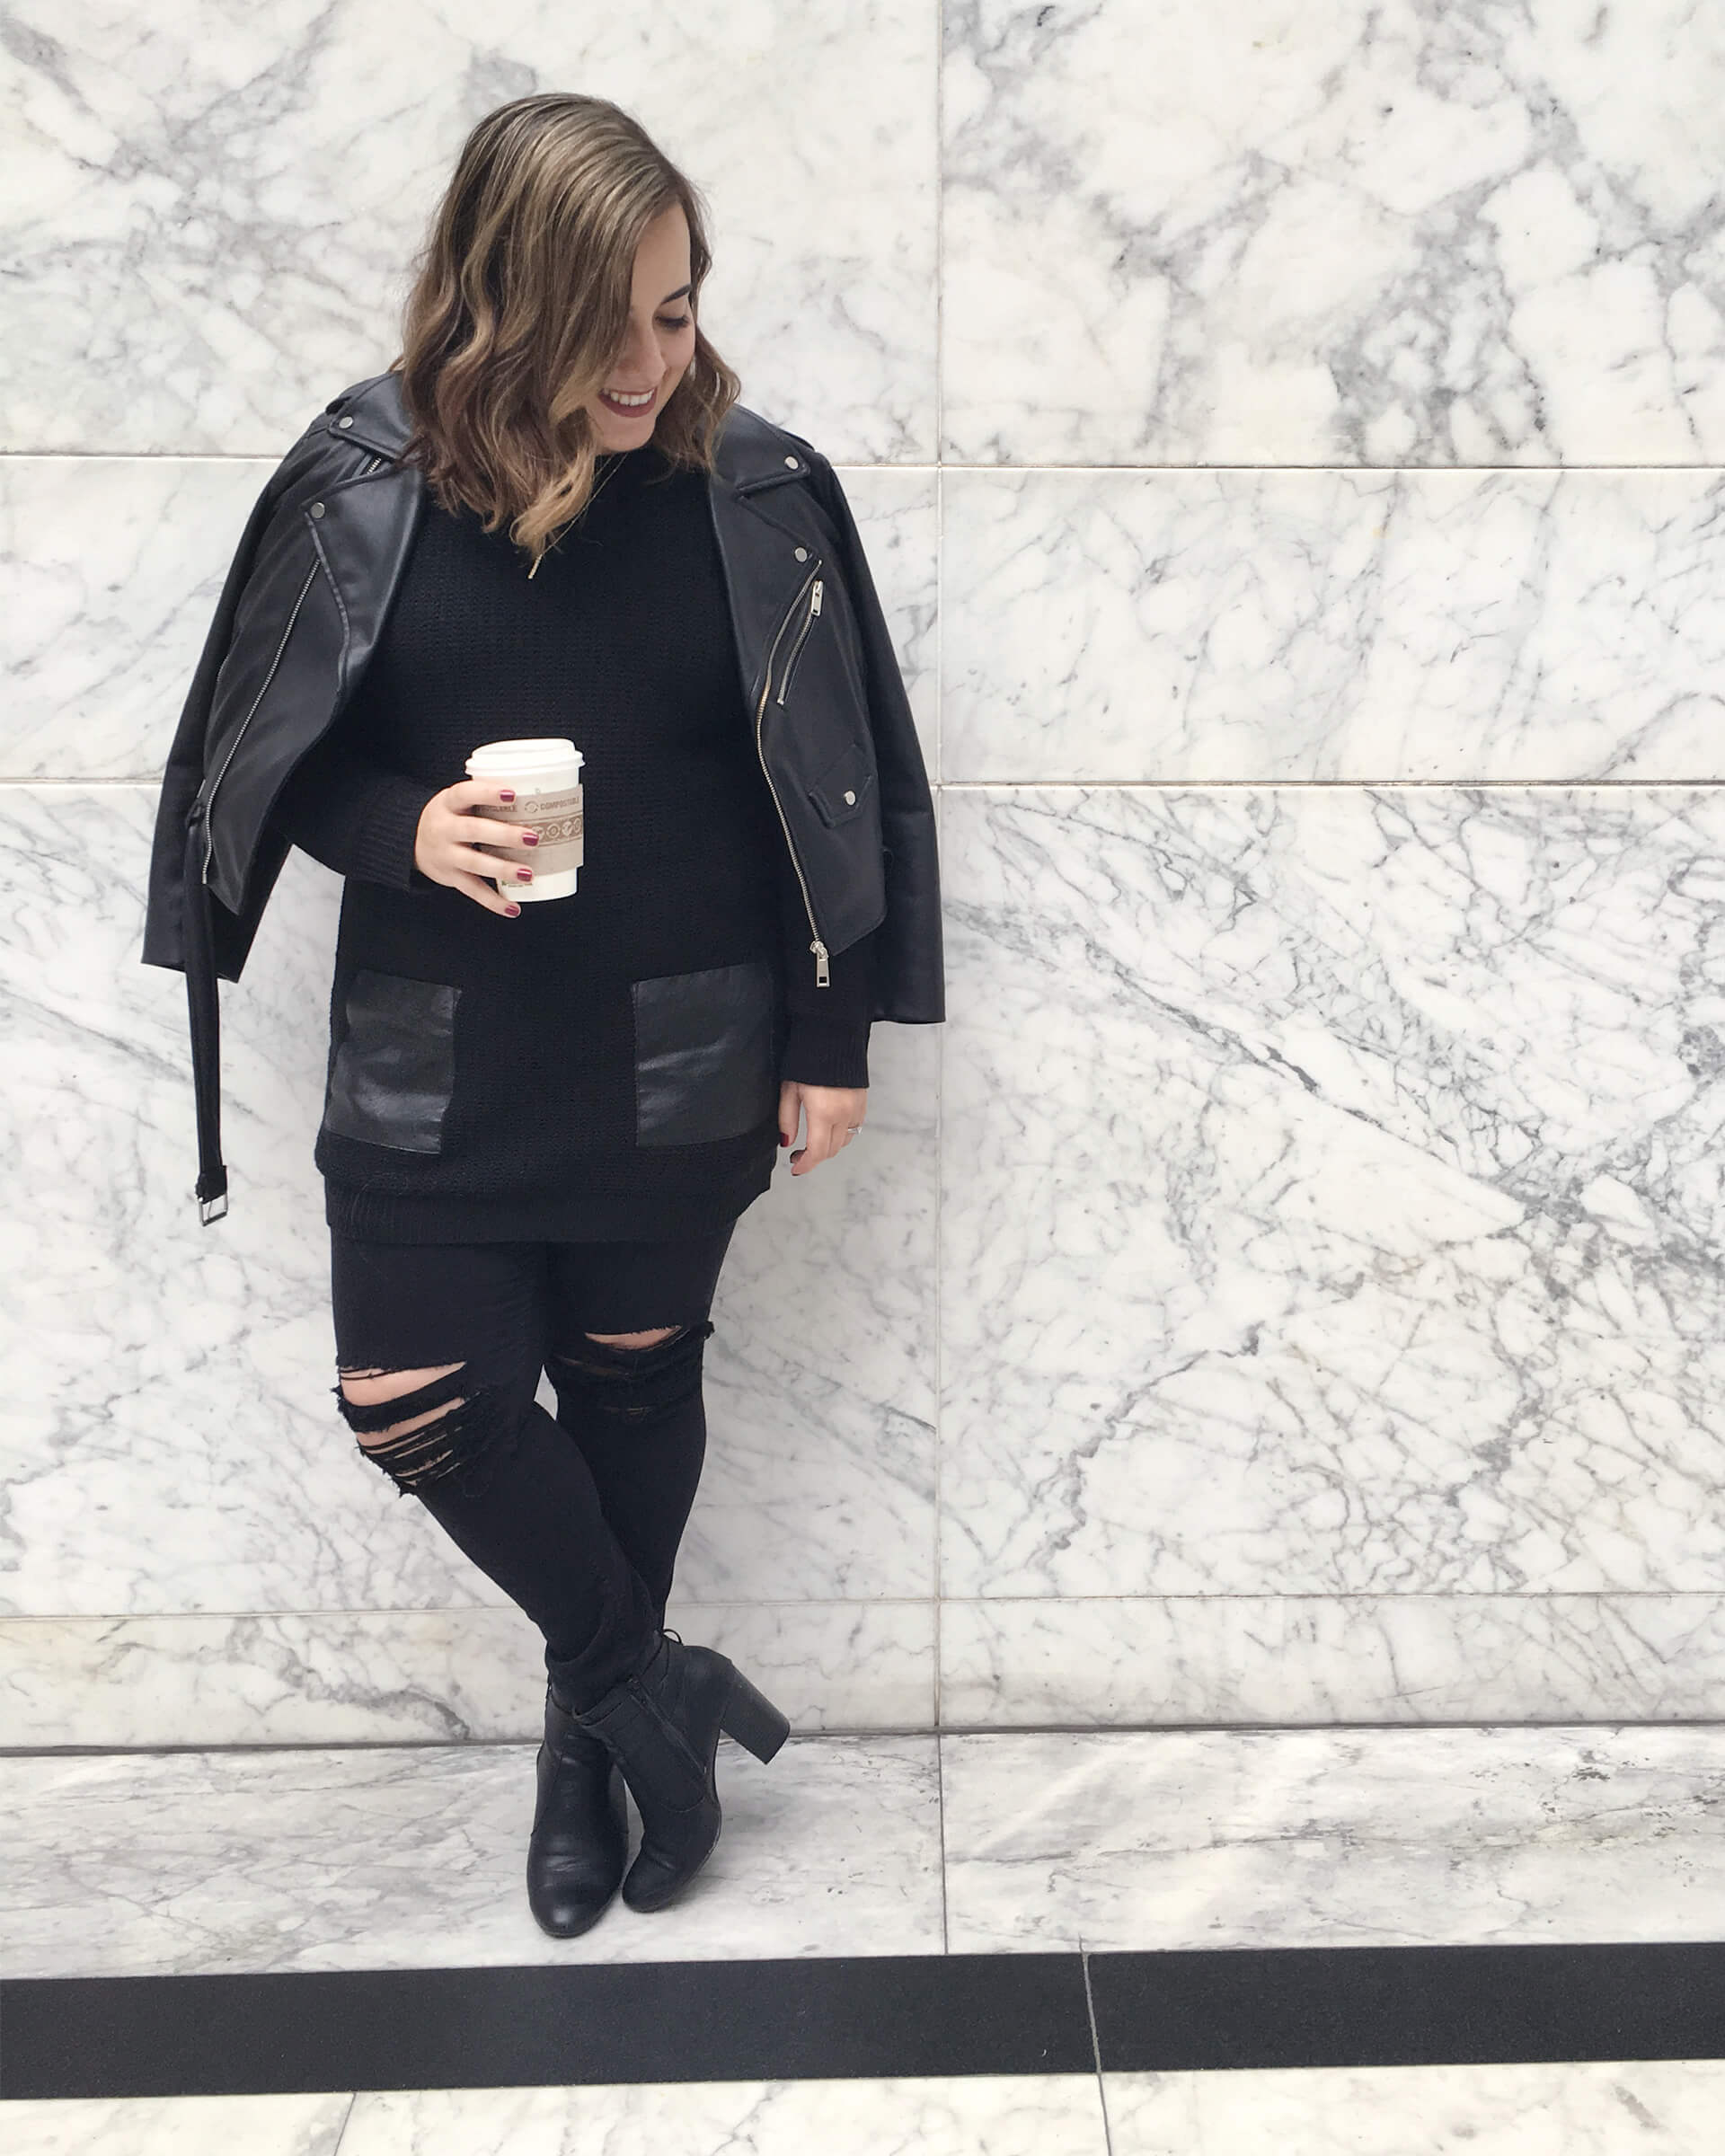 How to Dress More Edgy